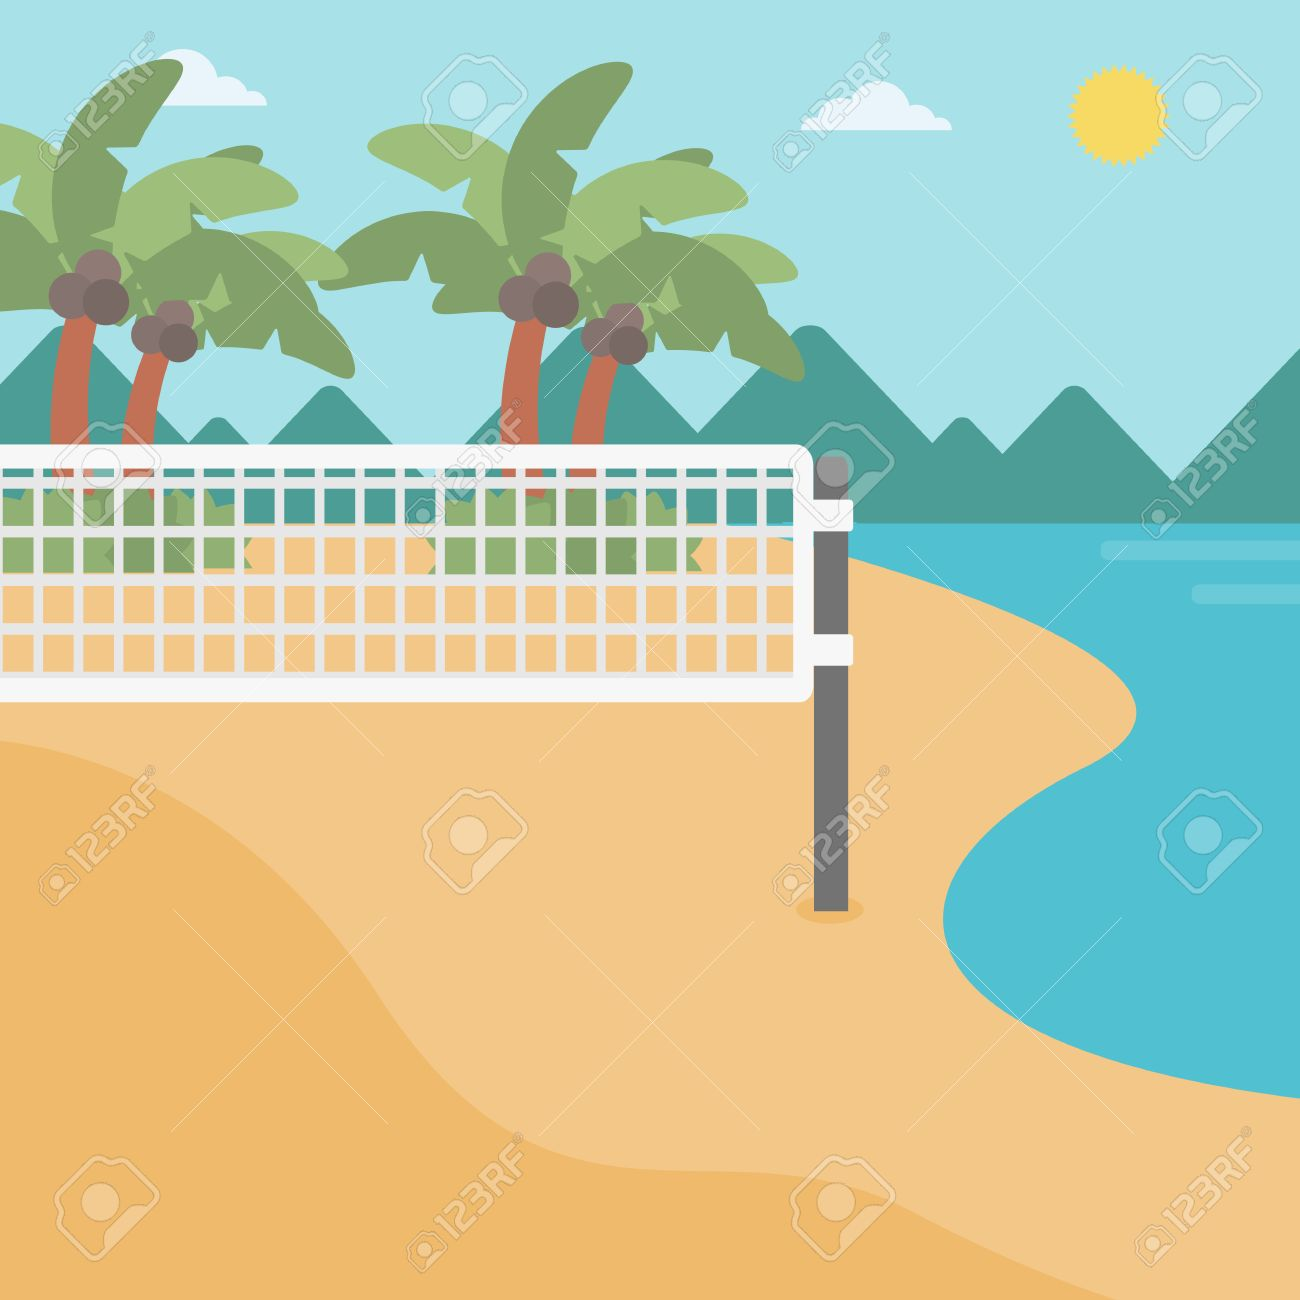 Background Of Beach Volleyball Court At The Seashore Volleyball Royalty Free Cliparts Vectors And Stock Illustration Image 57911805